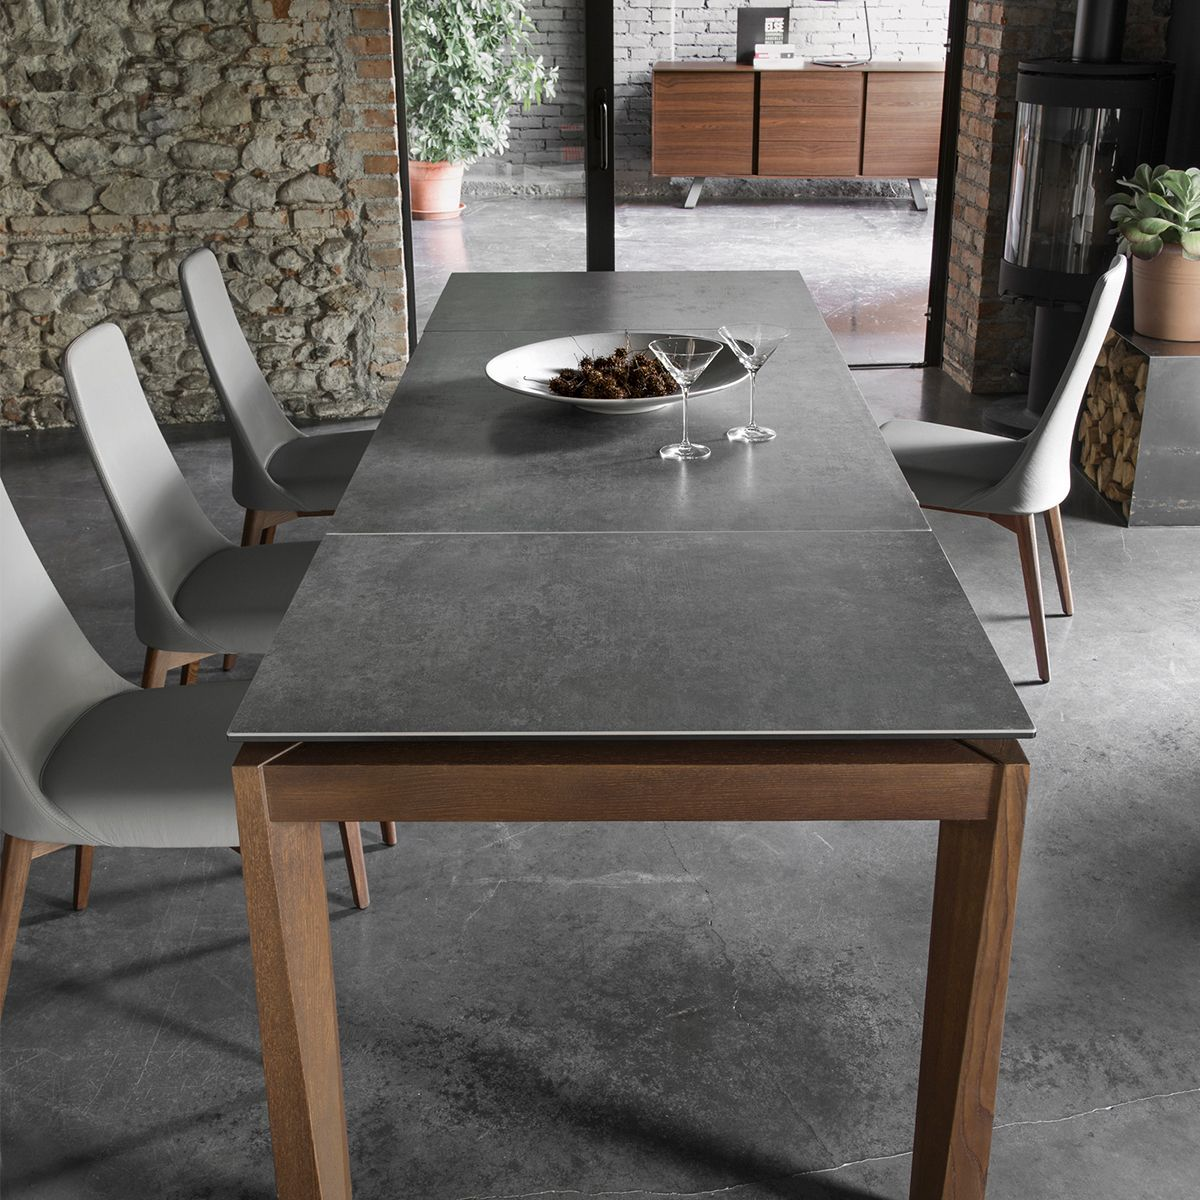 Esteso Wood Features An Ingenious Extension Mechanism That Allows You To Choose From Three Sizes Seating Up To 10 Guests The Top Furniture Dining Table Table